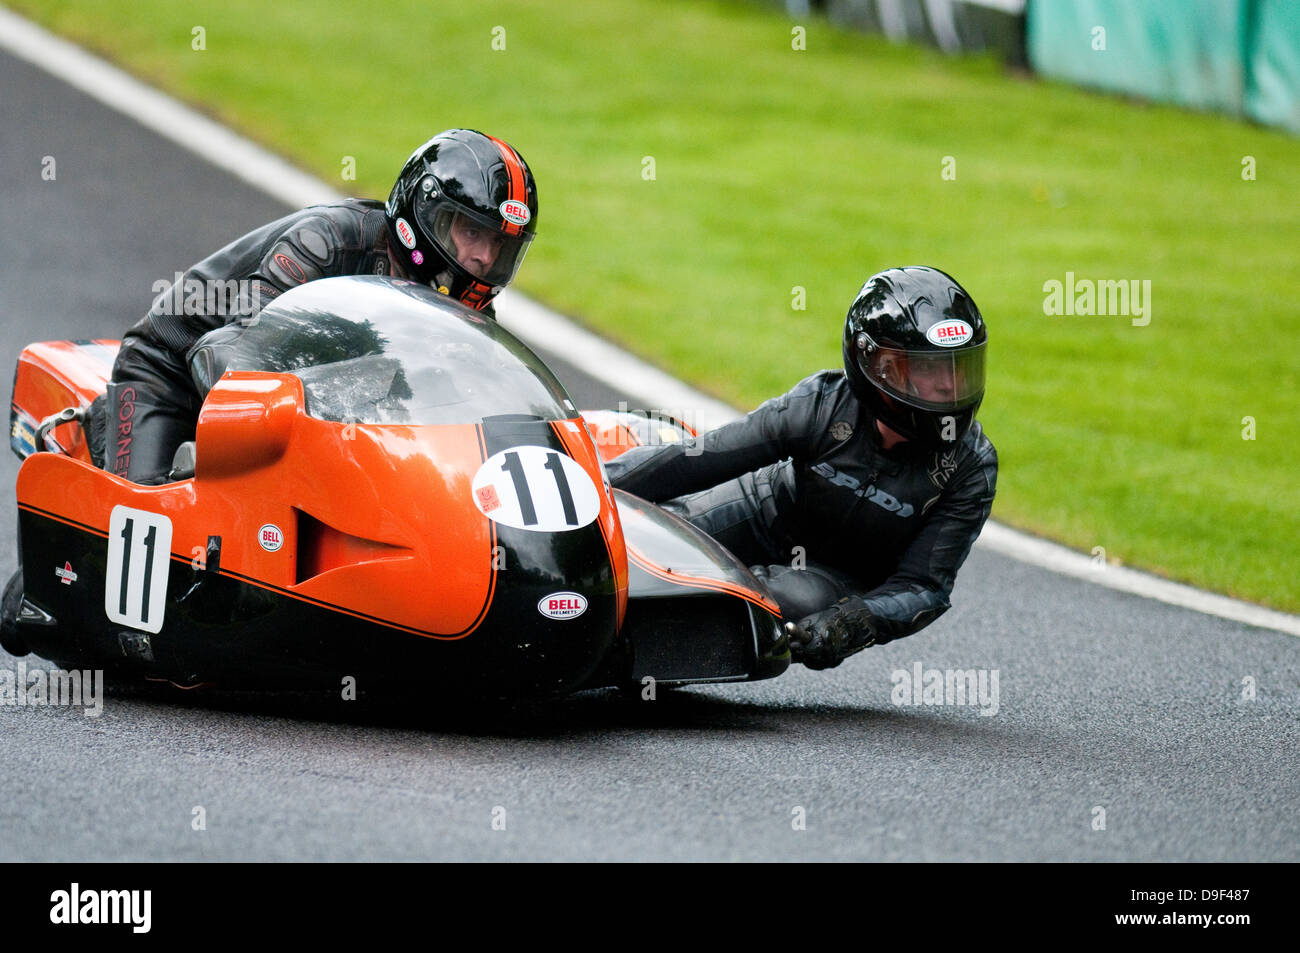 classic racing motorcycle stock photos classic racing motorcycle stock images alamy. Black Bedroom Furniture Sets. Home Design Ideas